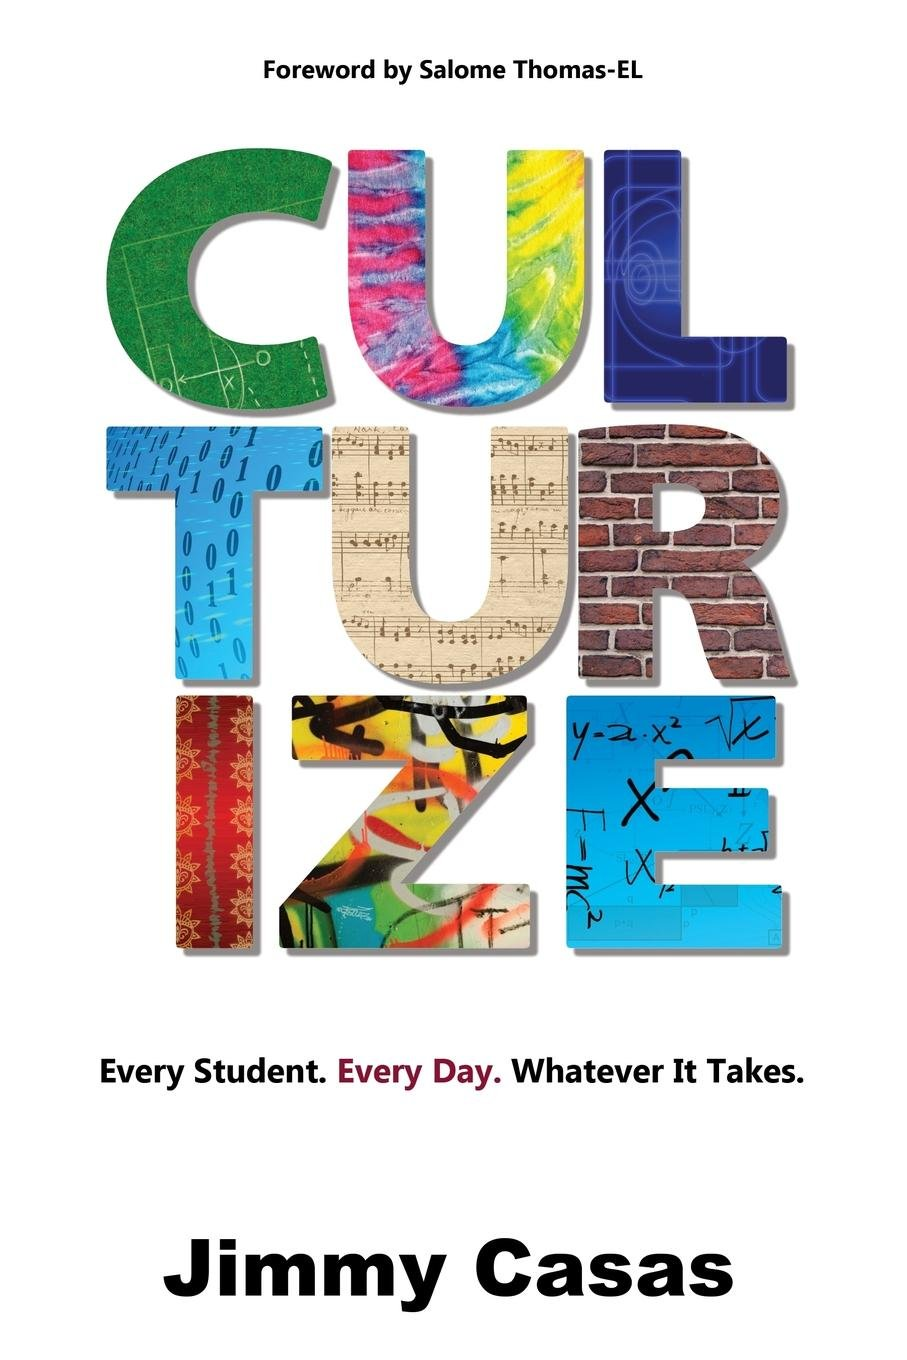 Cover of Jimmy Casas' book Culturize